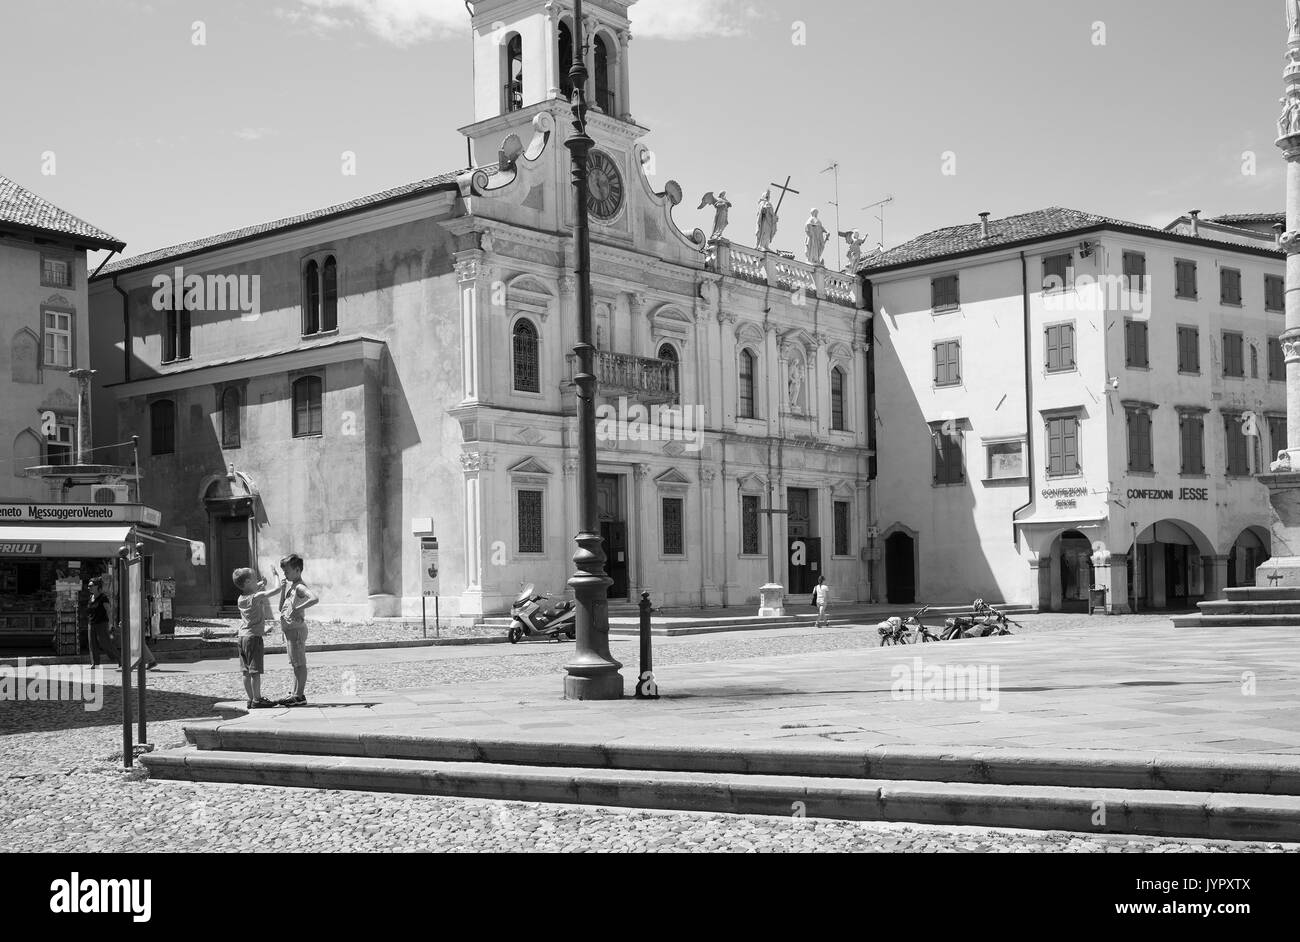 two boys in front of church San Giacomo Matteotti on Piazza Matteotti, Udine - Stock Image